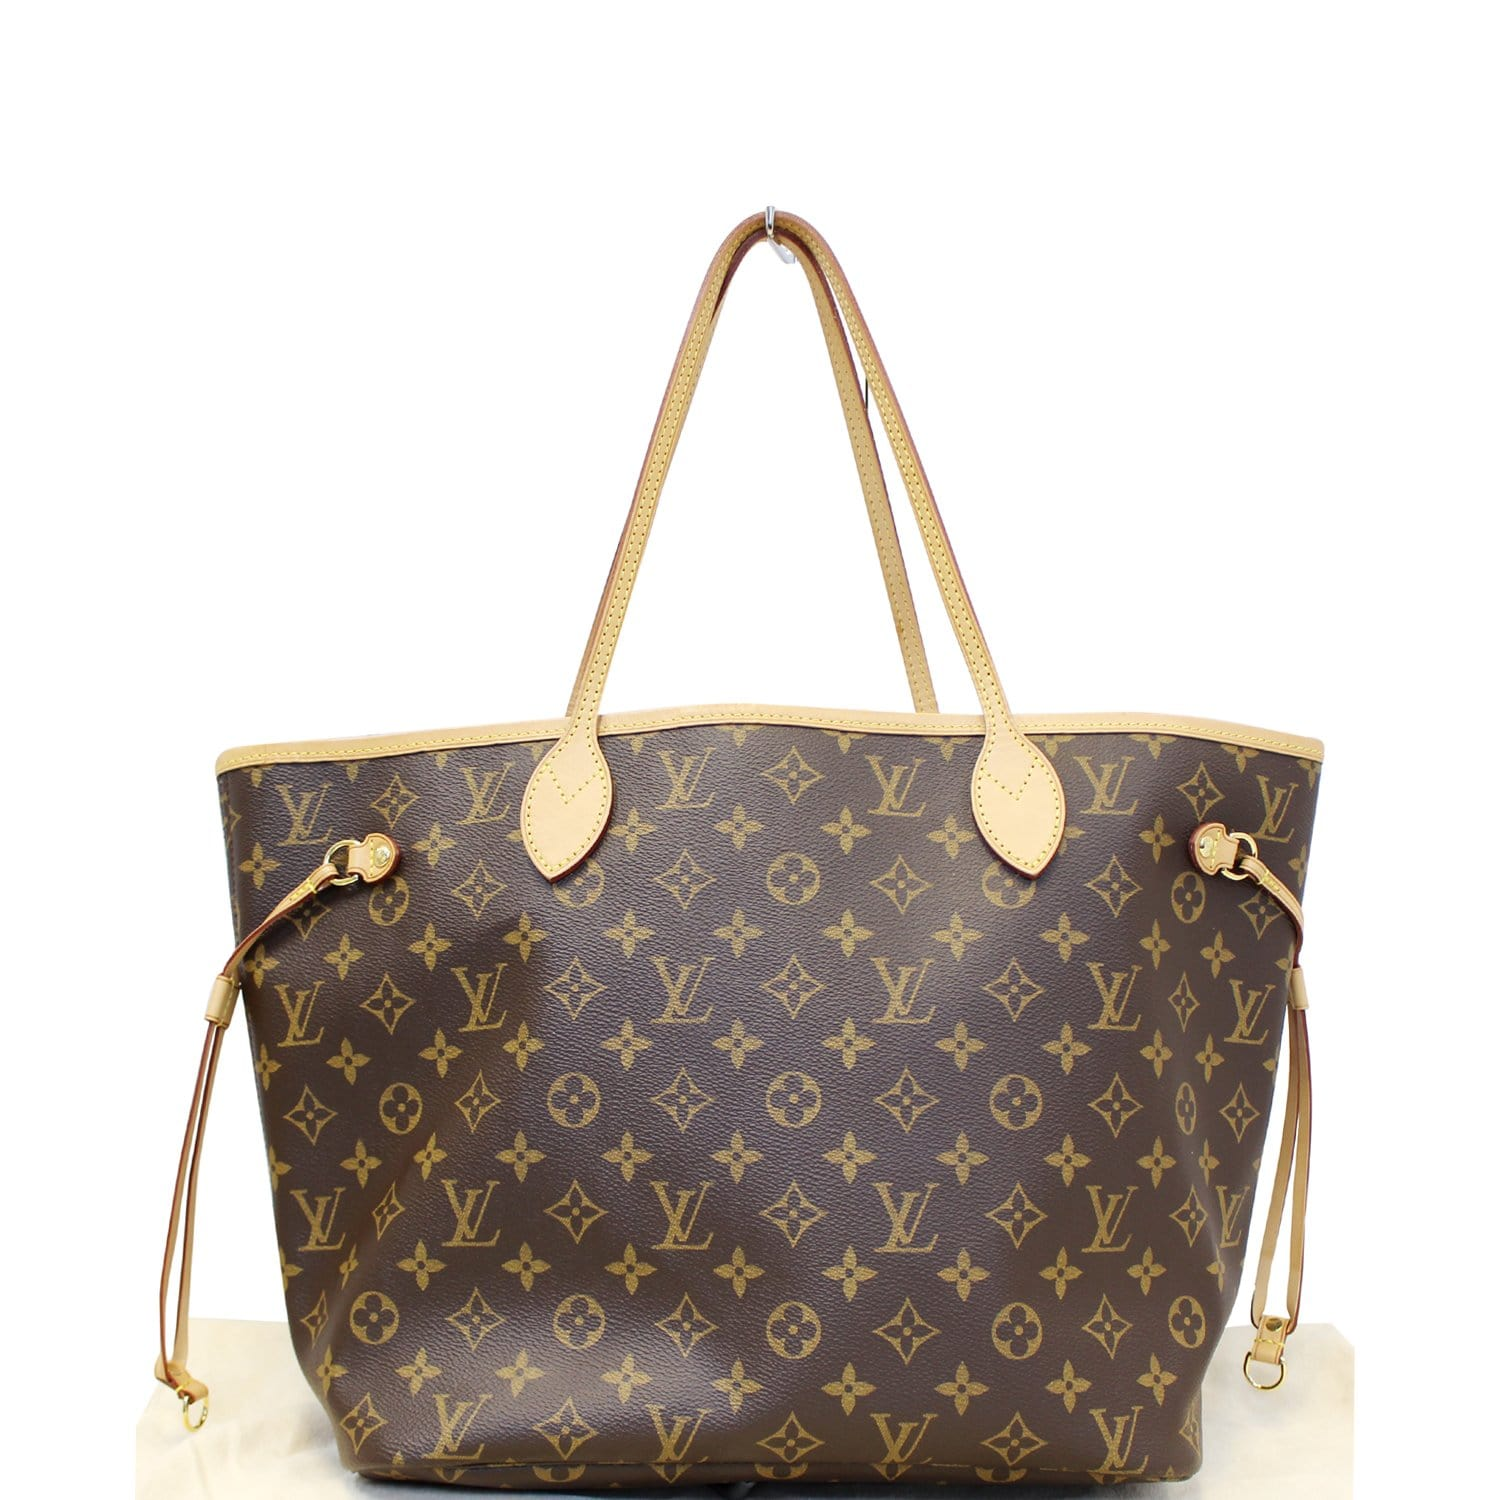 c482add2b344 LOUIS VUITTON Neverfull MM Monogram Canvas Tote Shoulder Bag Rose  Ballerine-US